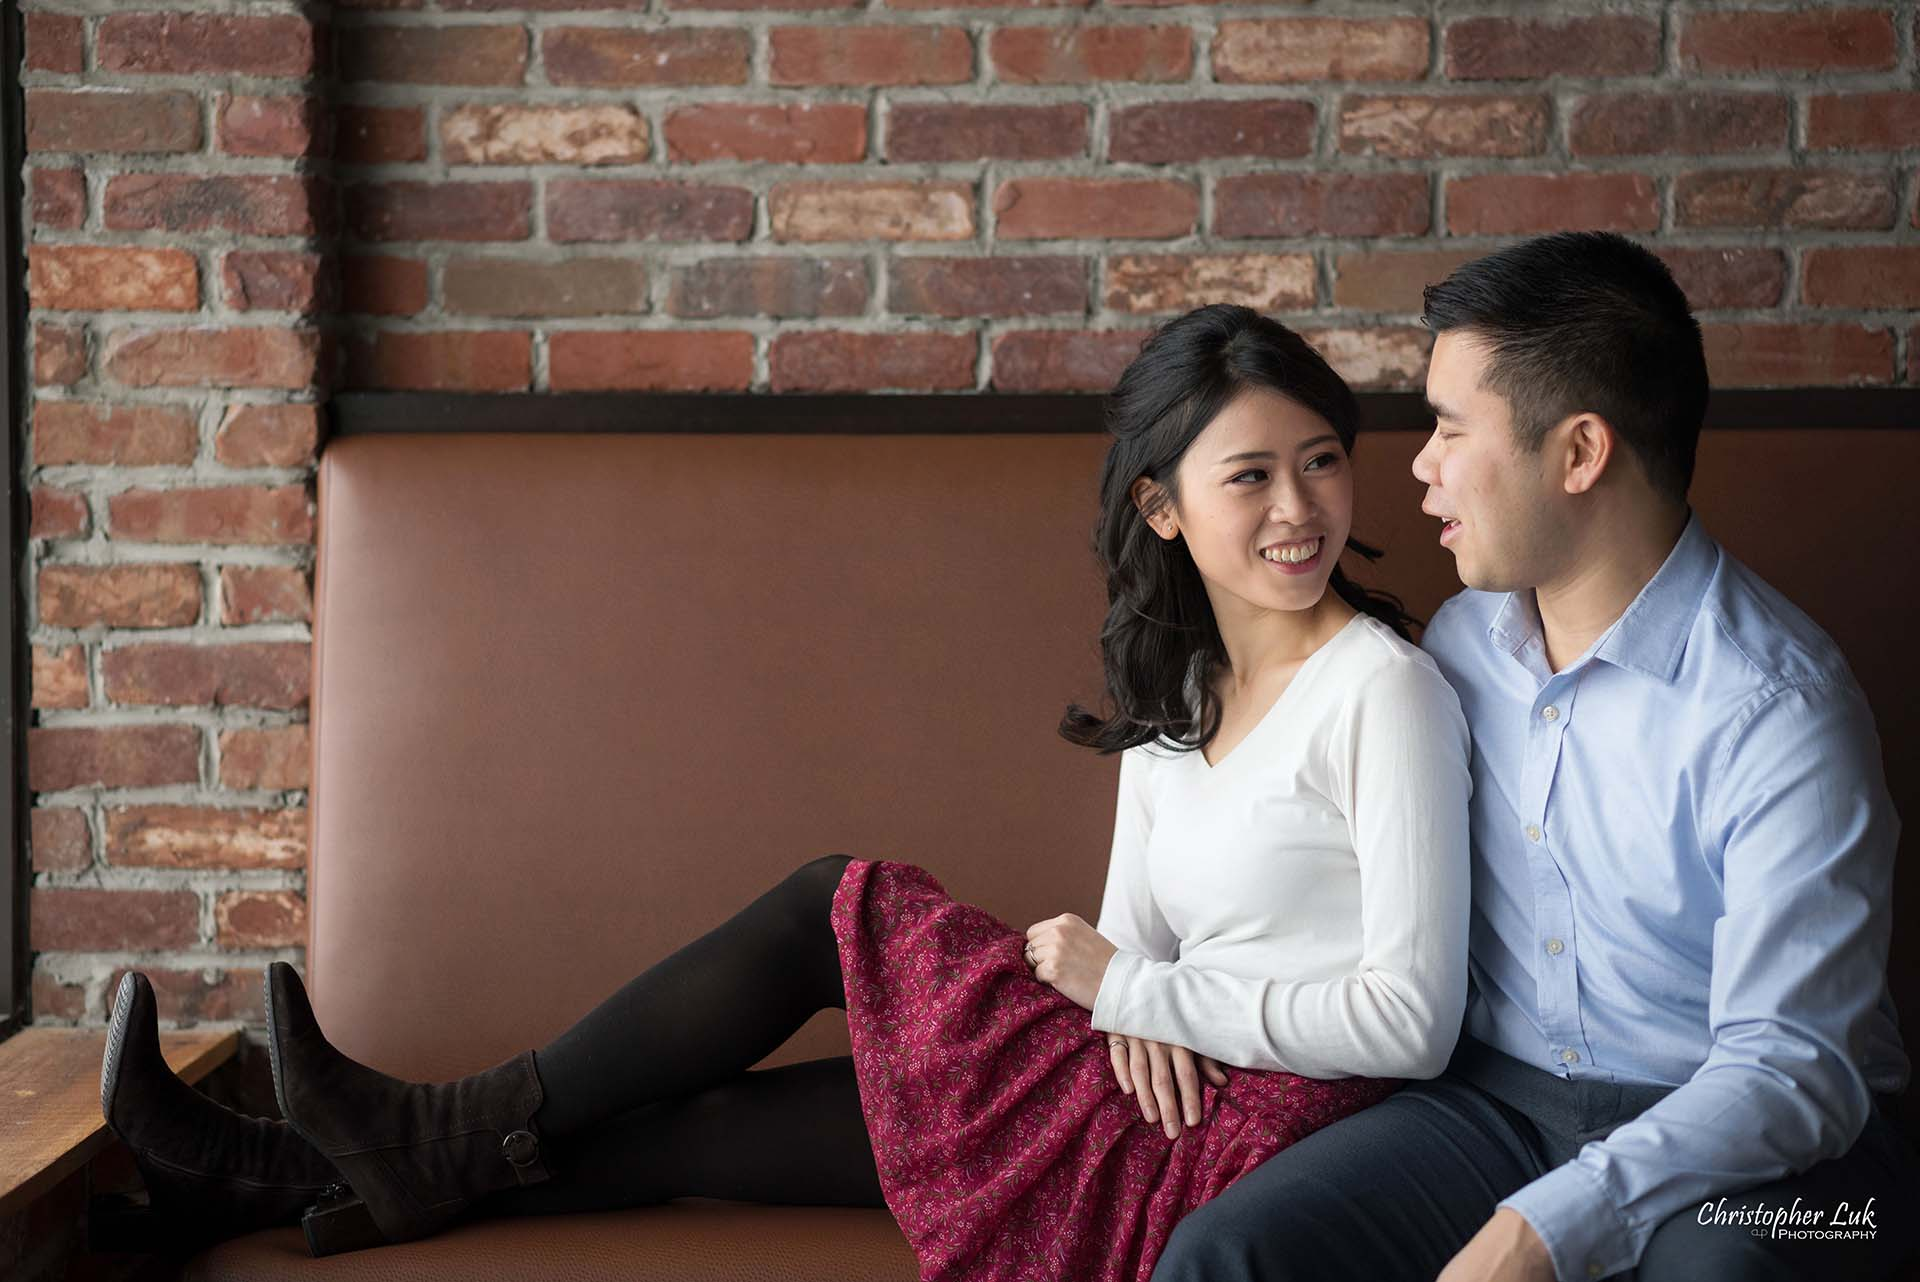 Christopher Luk Toronto Wedding Photographer - Richmond Hill Markham York Region Cafe Coffee Shop Bistro Winter Indoor Engagement PreWedding Natural Candid Photojournalistic Bride Groom Hug Rustic Brick Wall Bench Booth Sitting Together